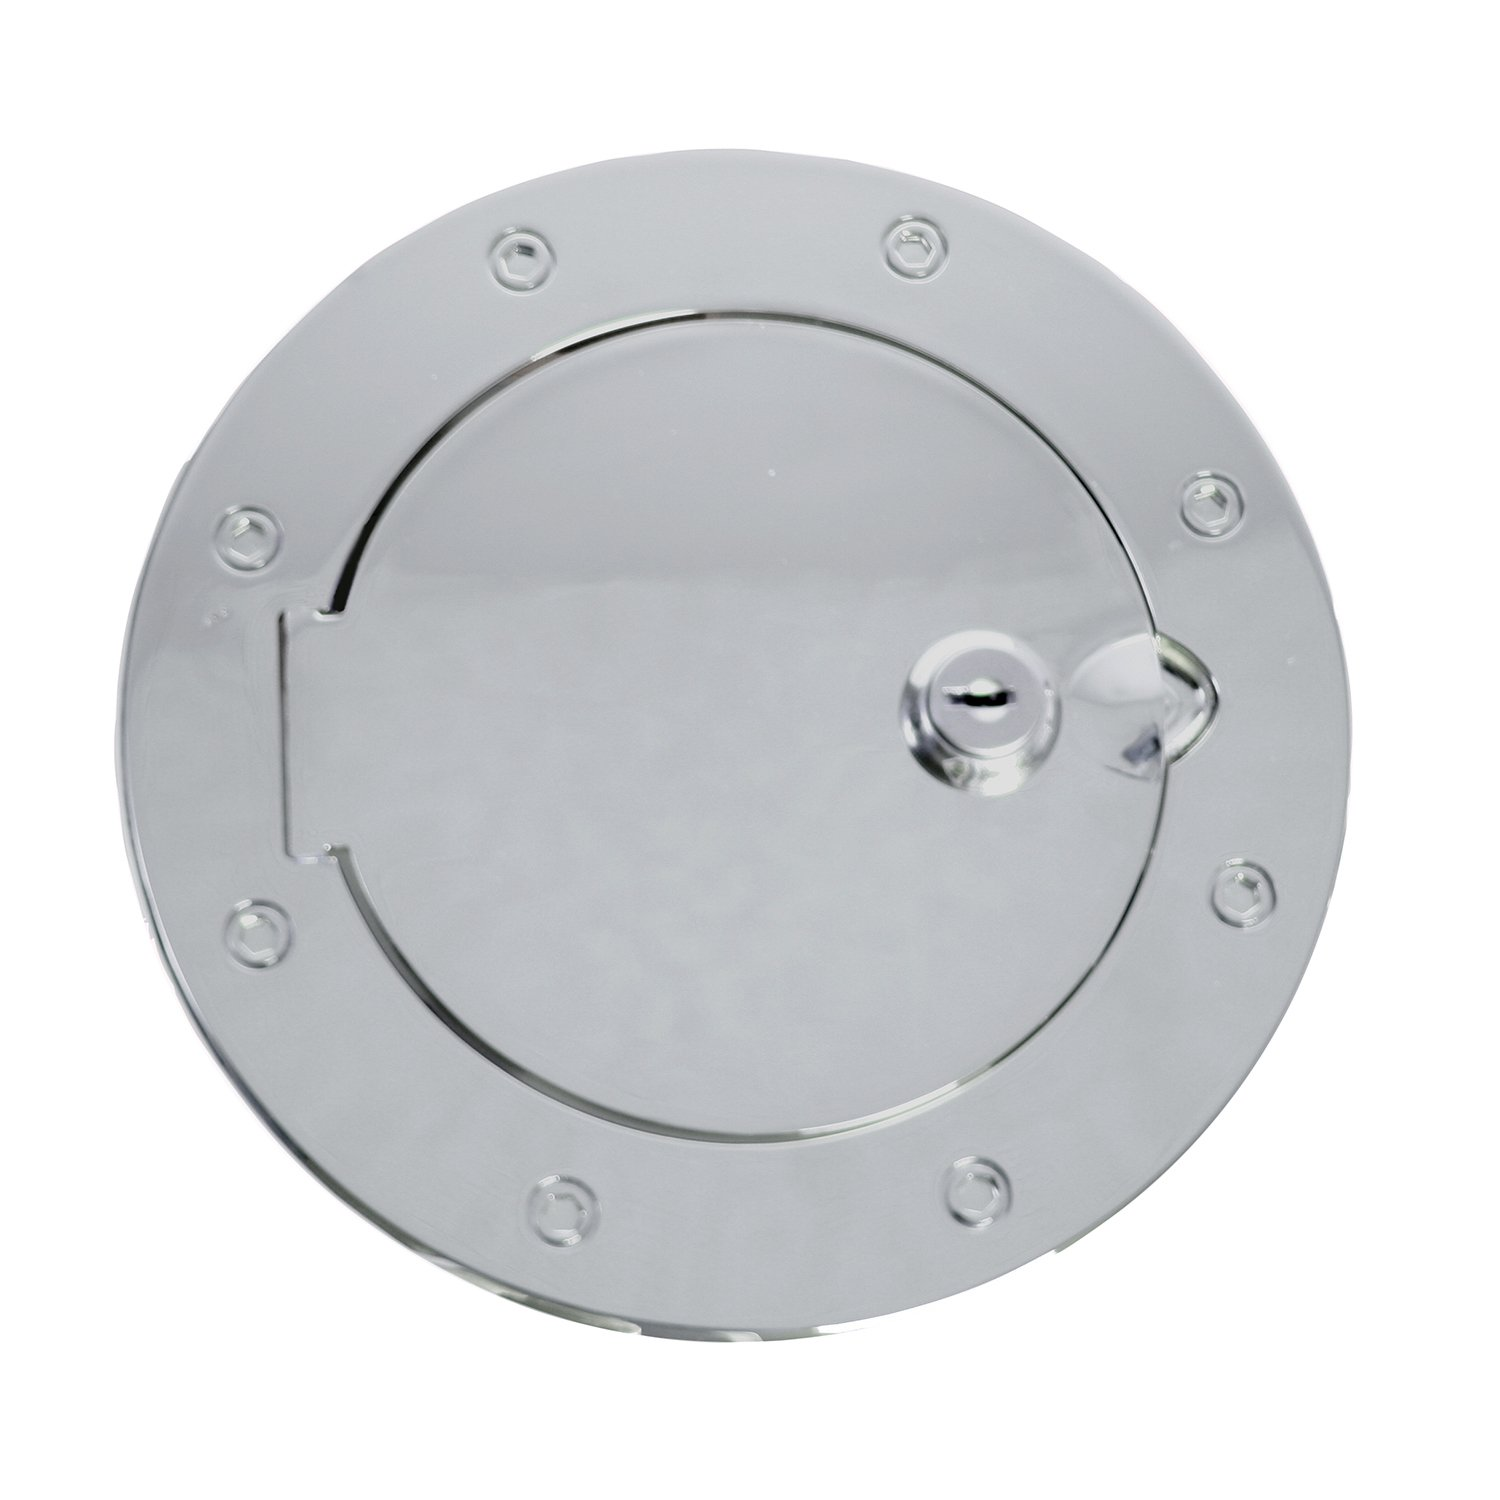 Rugged Ridge 11134.03 Polished Stainless Steel Gas Door Cover